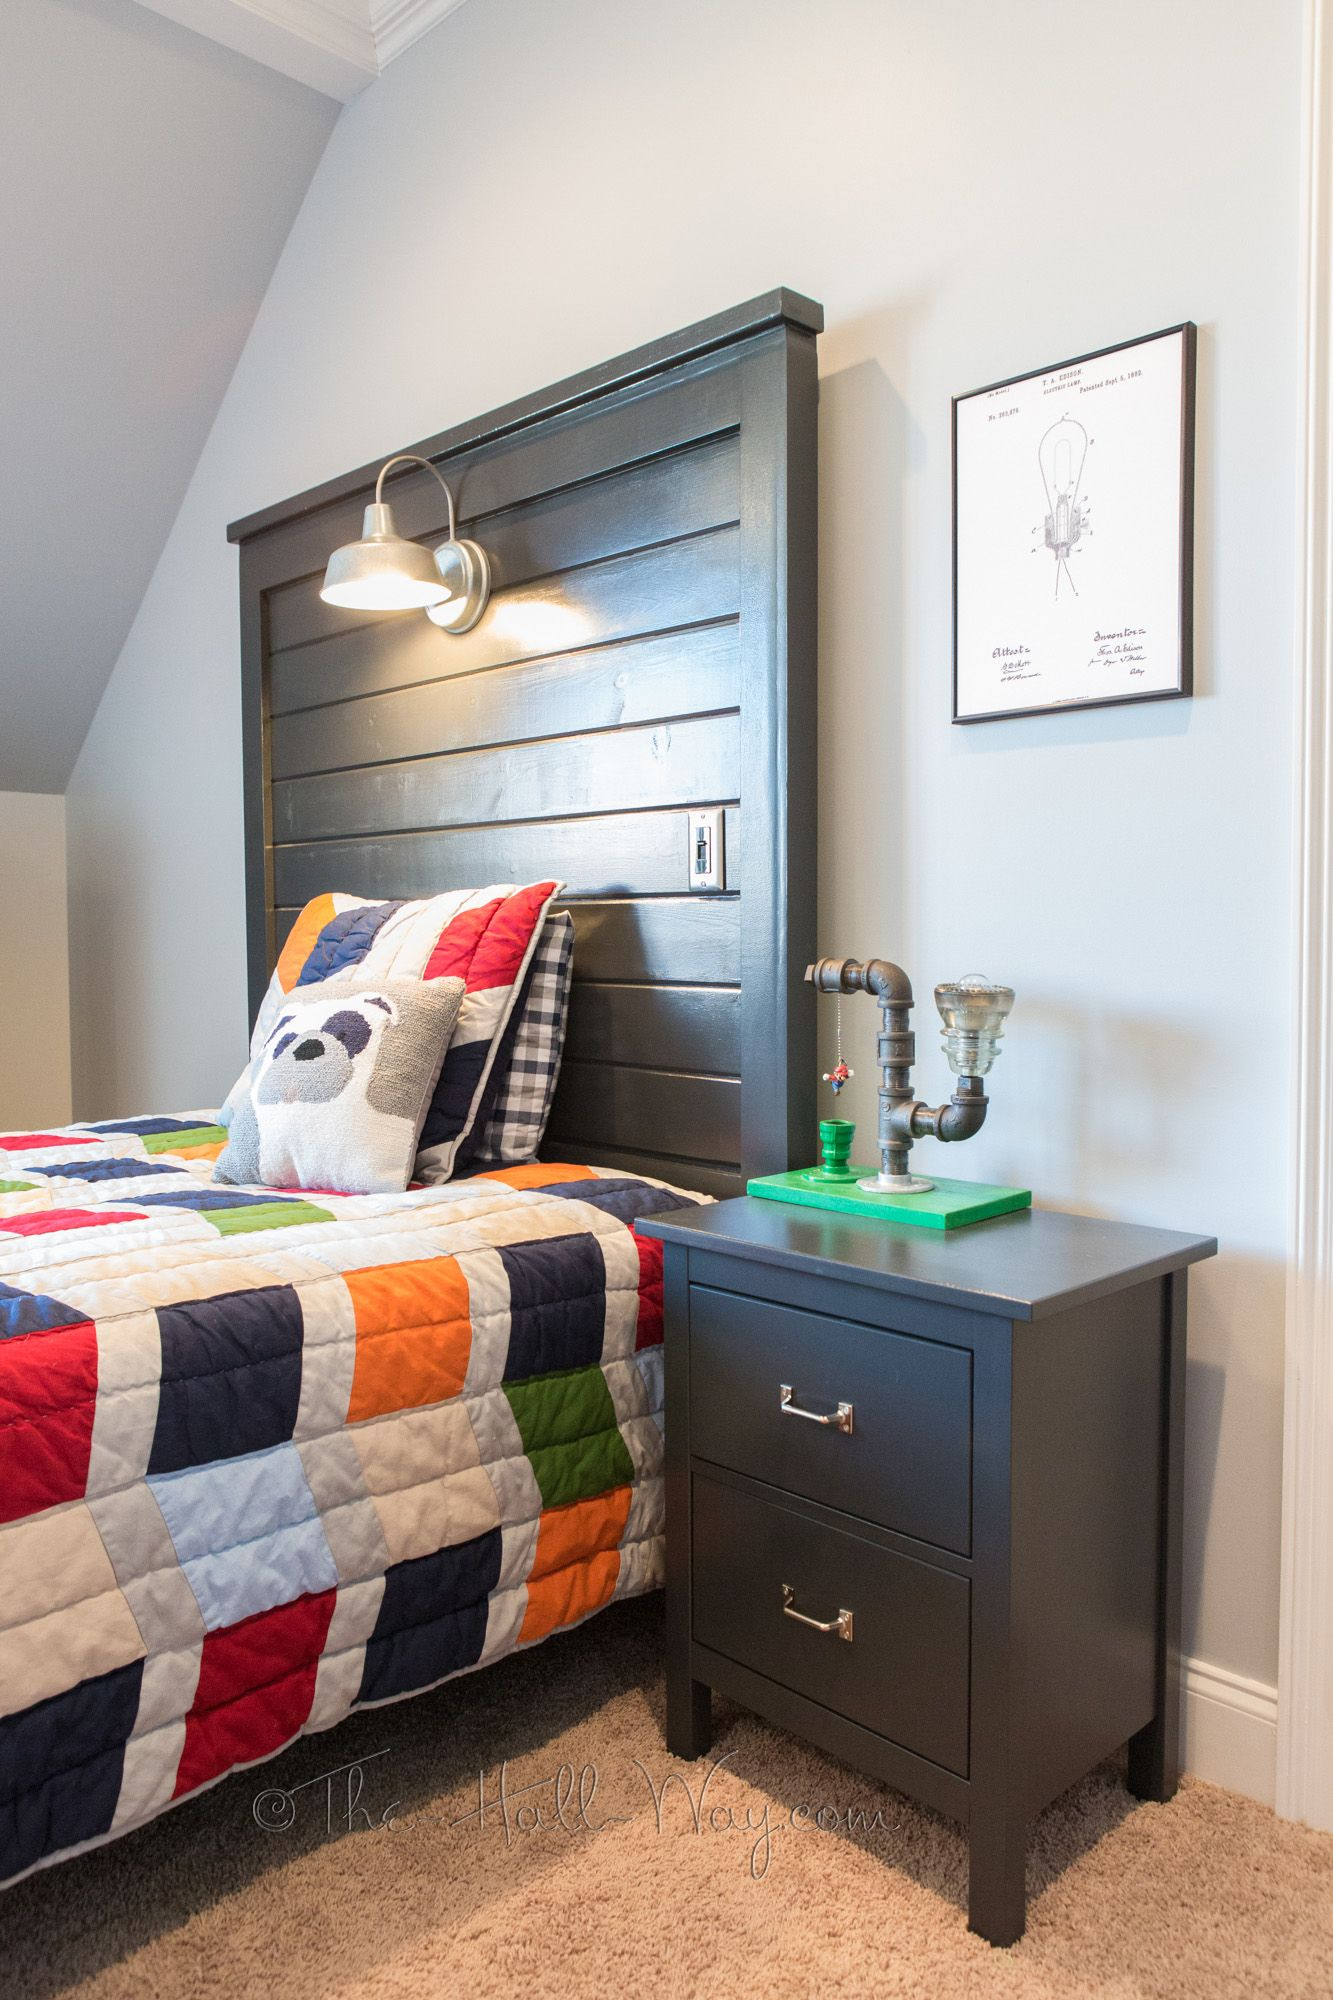 Diy Liam Barn Light Bed Twin Size Kids Headboard Diy Full Size Headboard Bedroom Diy